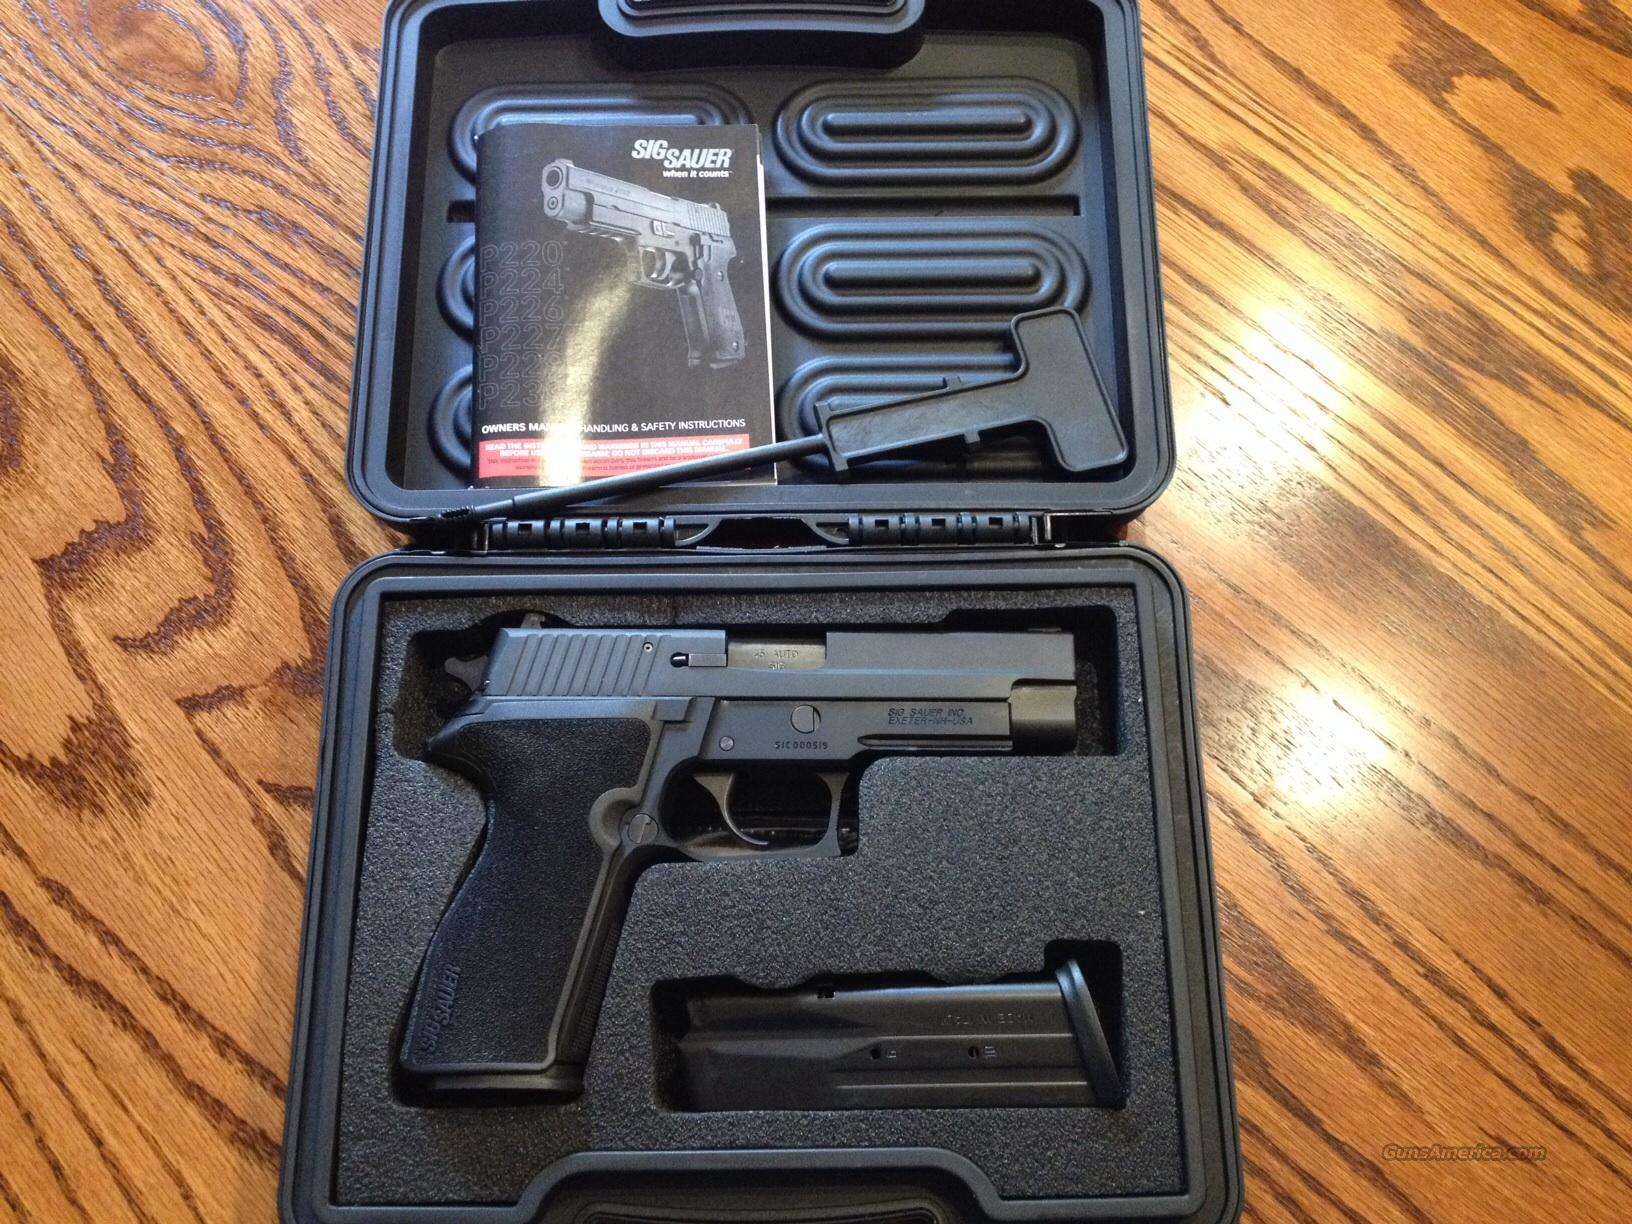 Sig Sauer P227 - 10+1 capacity of 45 ACP  Guns > Pistols > Sig - Sauer/Sigarms Pistols > Other